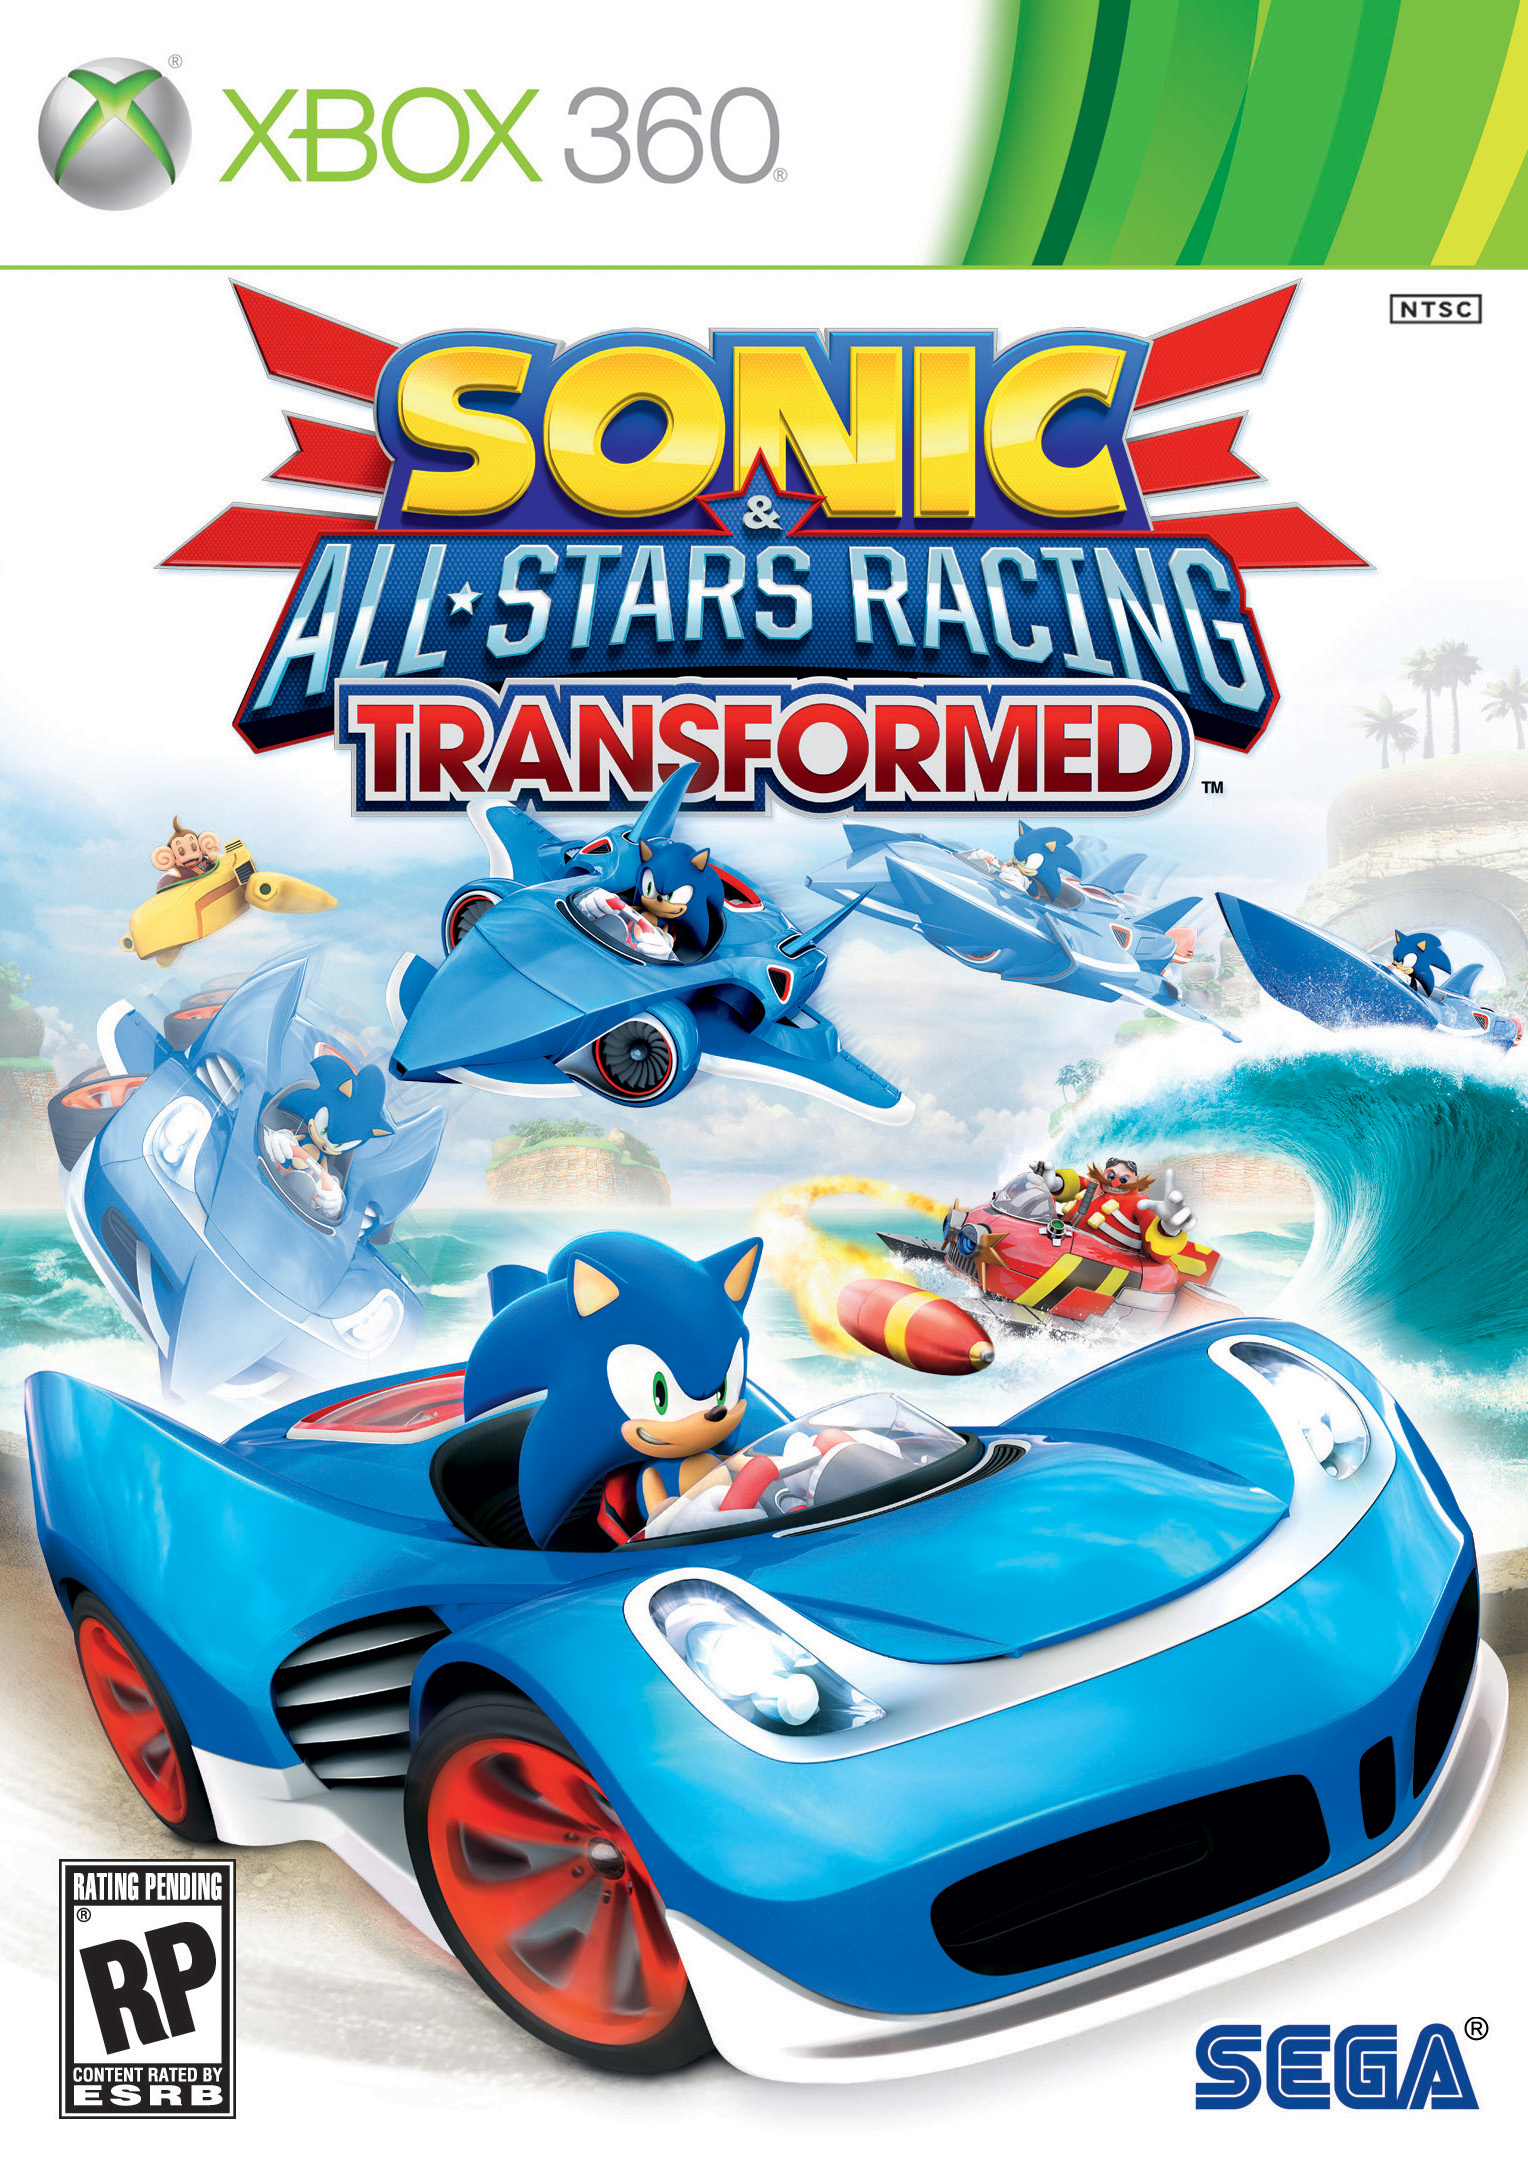 XBOX 360 - Sonic & All-Stars Racing Transformed